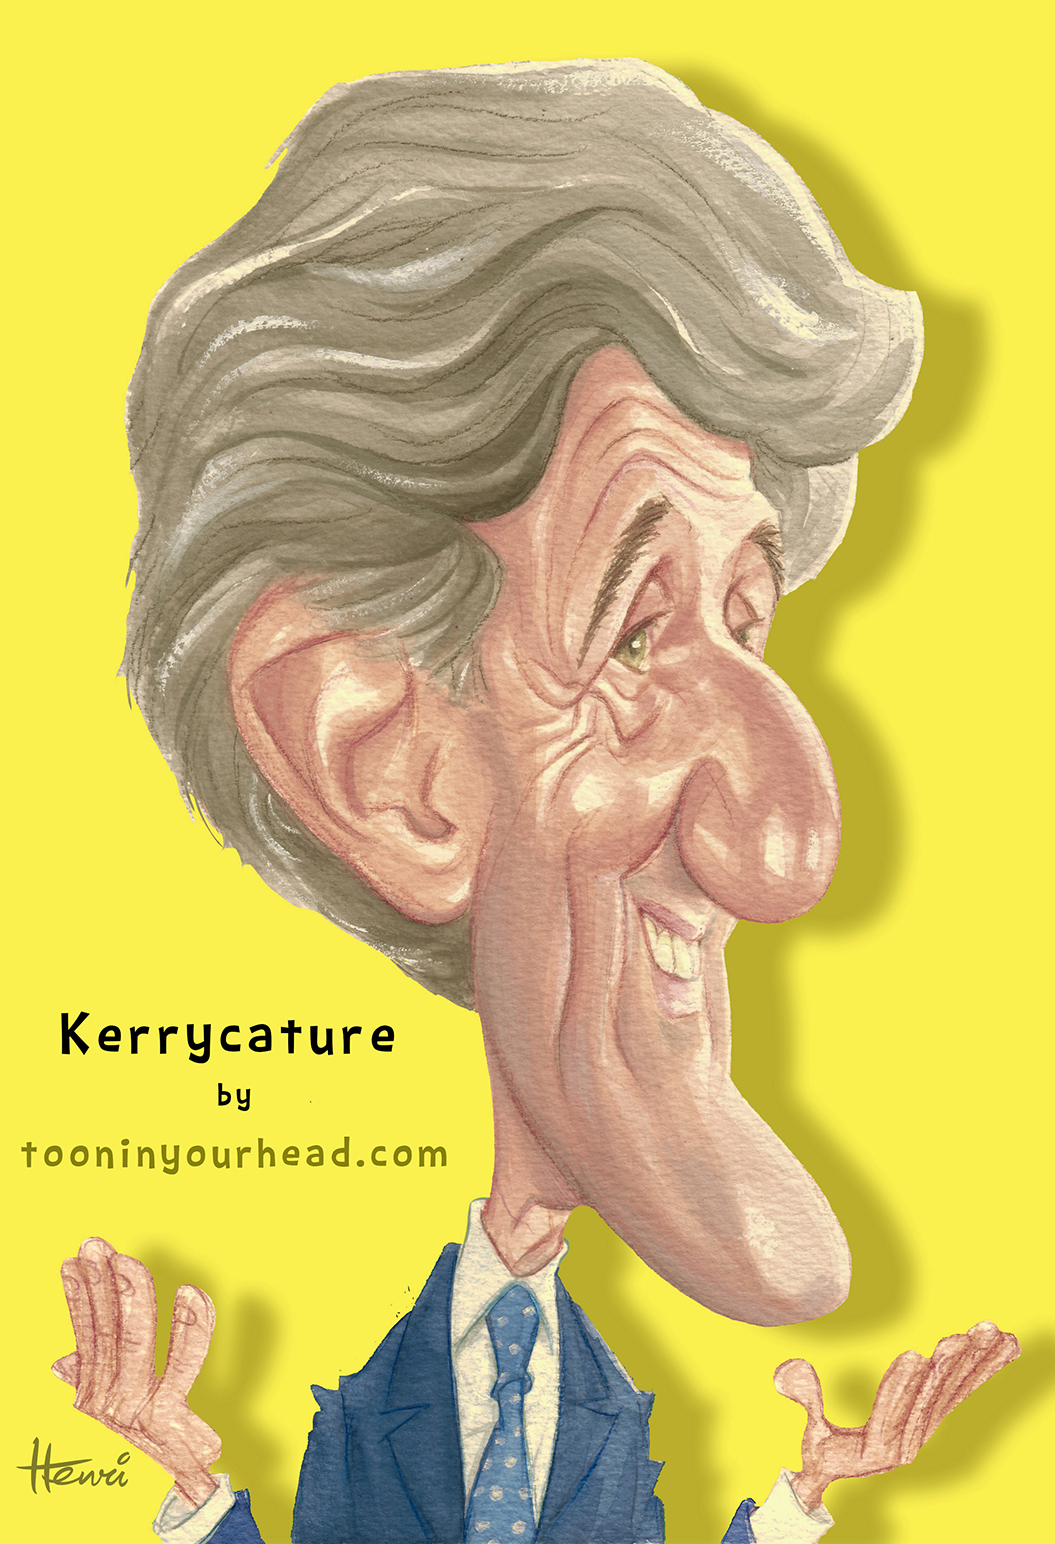 John Kerry Caricature by Henri Goldsmann